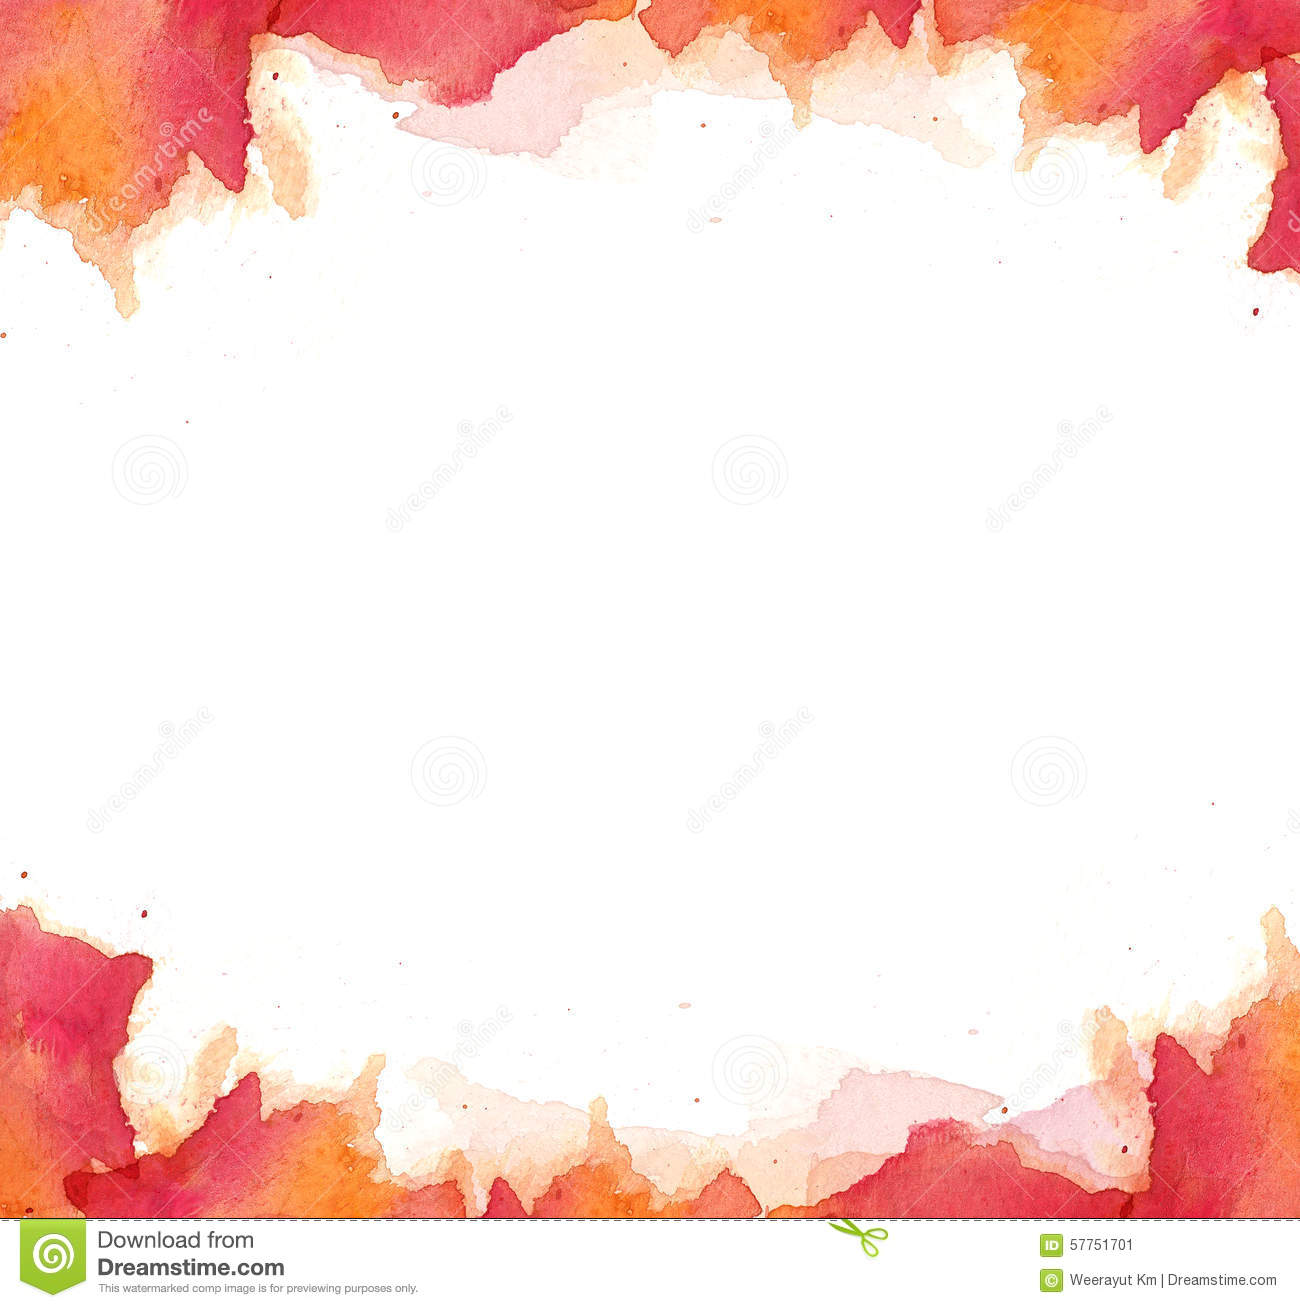 Watercolor Frame Background, Watercolor Paint High Resolution Stock ...